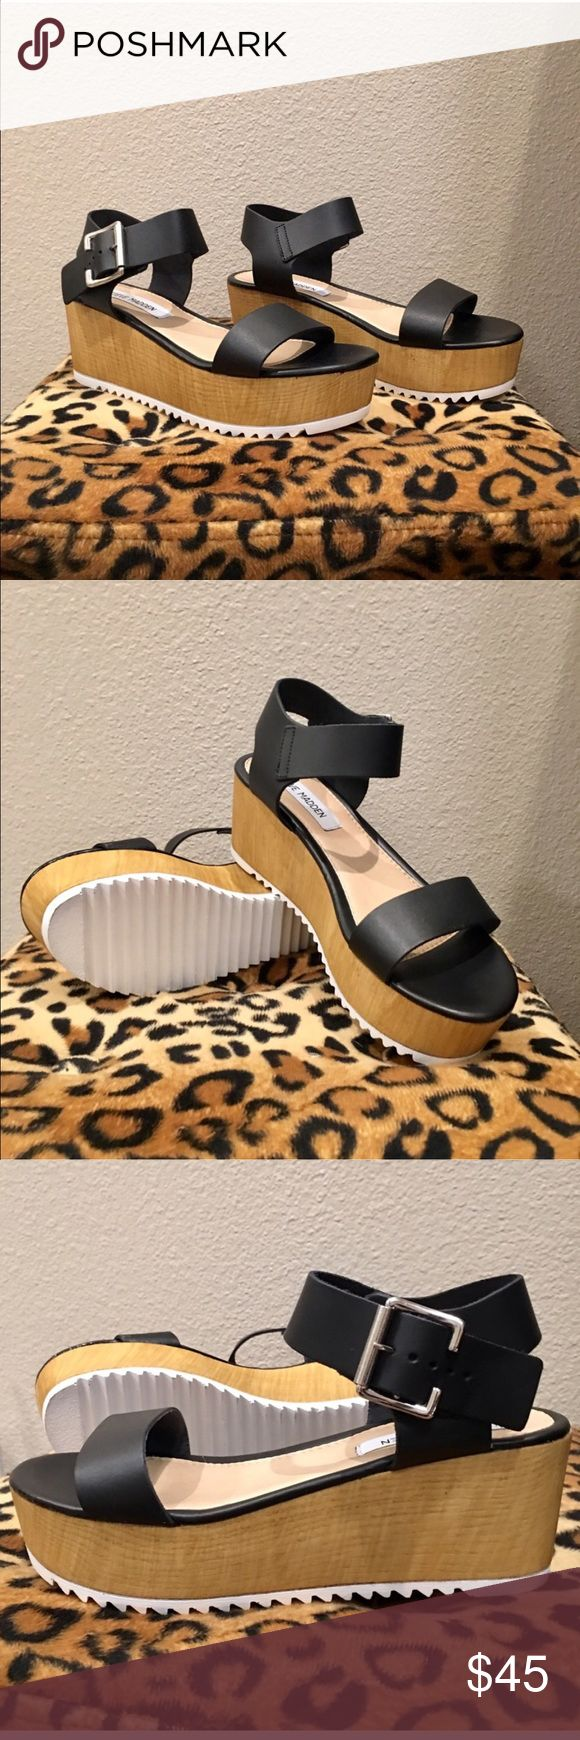 Steve Madden Platform Sandals New without box. Size 7.5. True to size. Wooden platform lowers with sporty white tread (painted wood, not rubber👌🏼) All leather black uppers, silver buckle so you can adjust fit at the ankle. A staple in my wardrobe year round. Steve Madden retail $80.00. Not on Poshmark👏🏼💖 Steve Madden Shoes Platforms